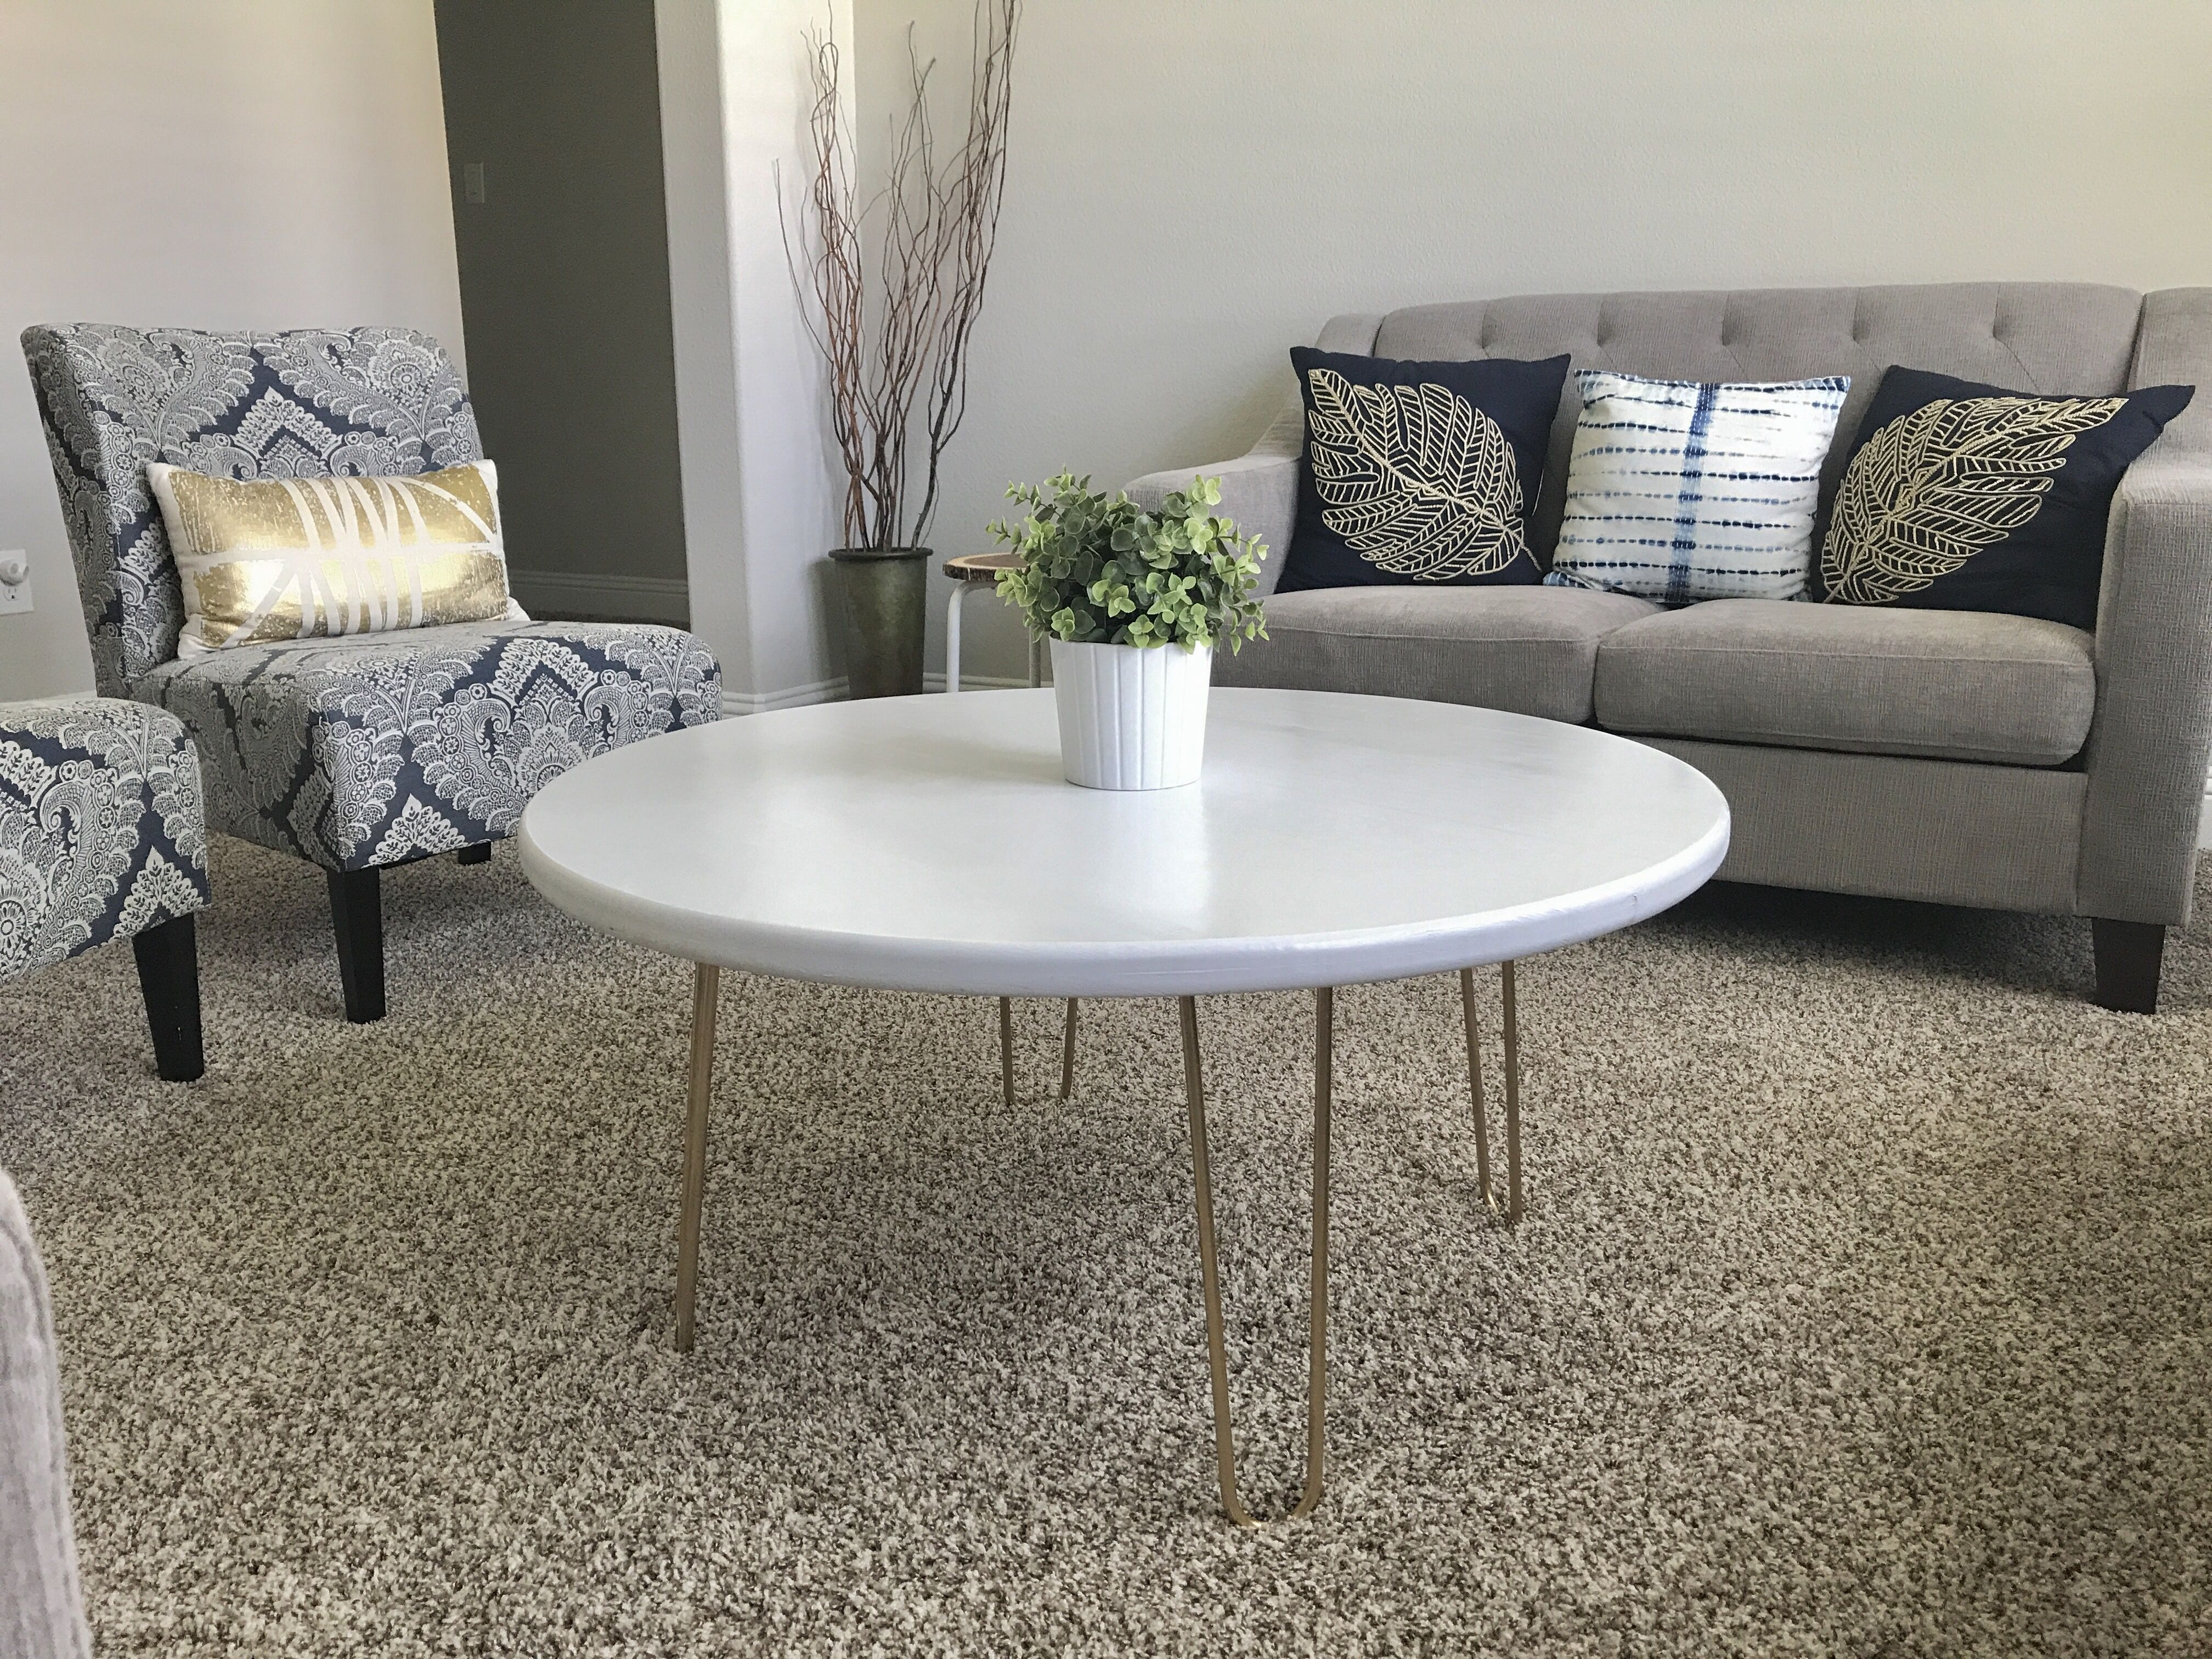 White Round Table Top With Gold Hairpin Legs Had The Tabletop